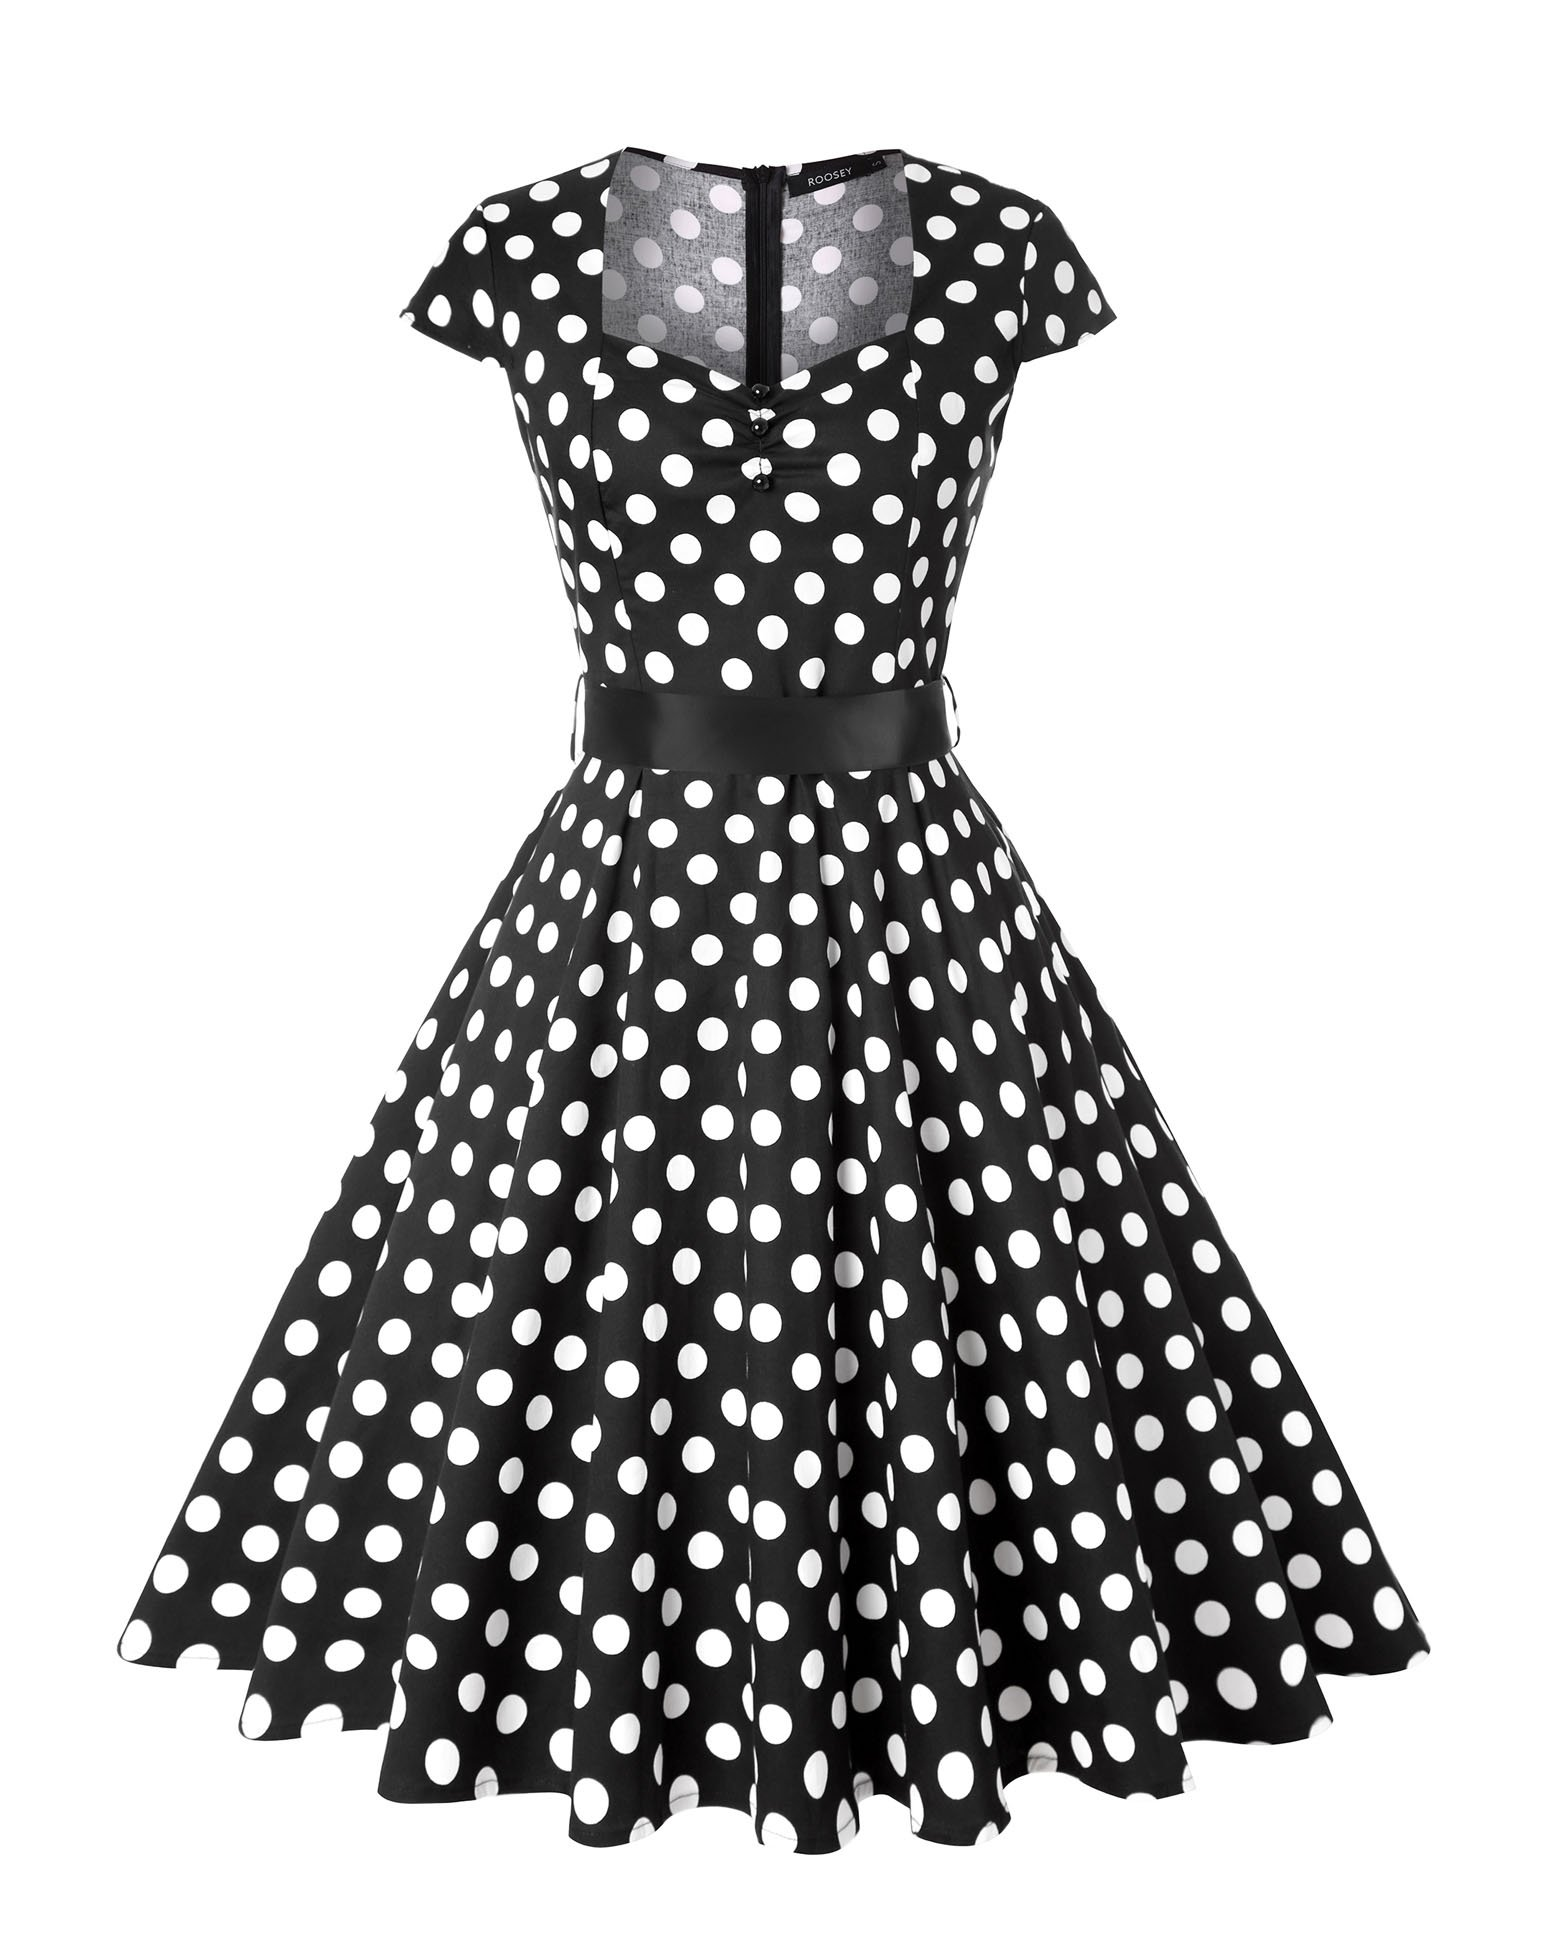 ROOSEY Women's Polka Dot Retro Vintage Style Cocktail Party Swing Pockets Dress